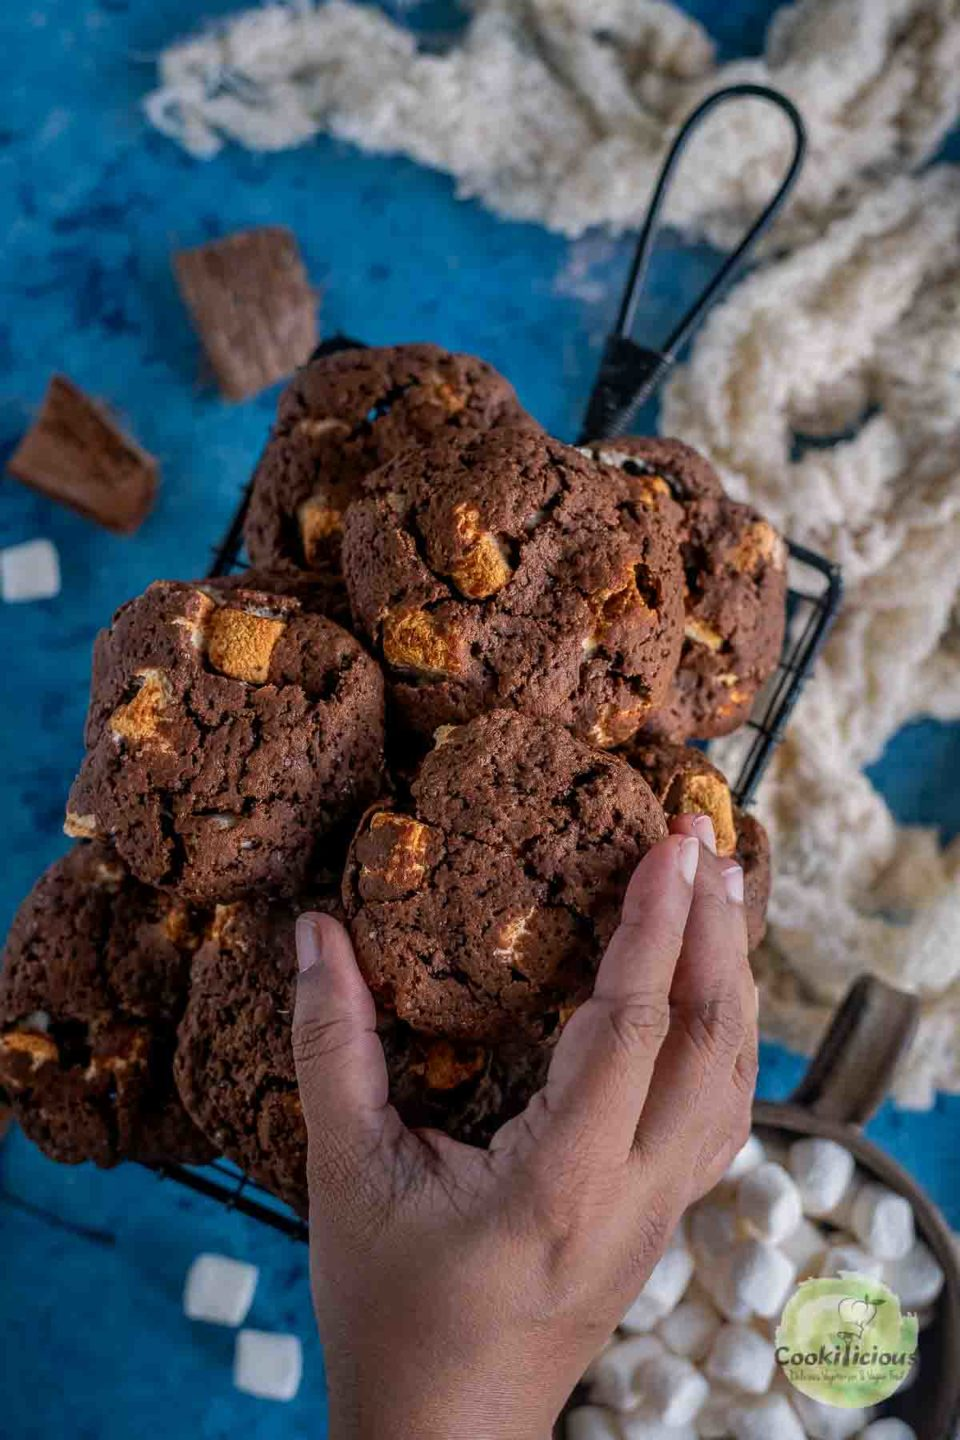 a hand reaching out to pick up one Vegan Marshmallow Chocolate Cookie